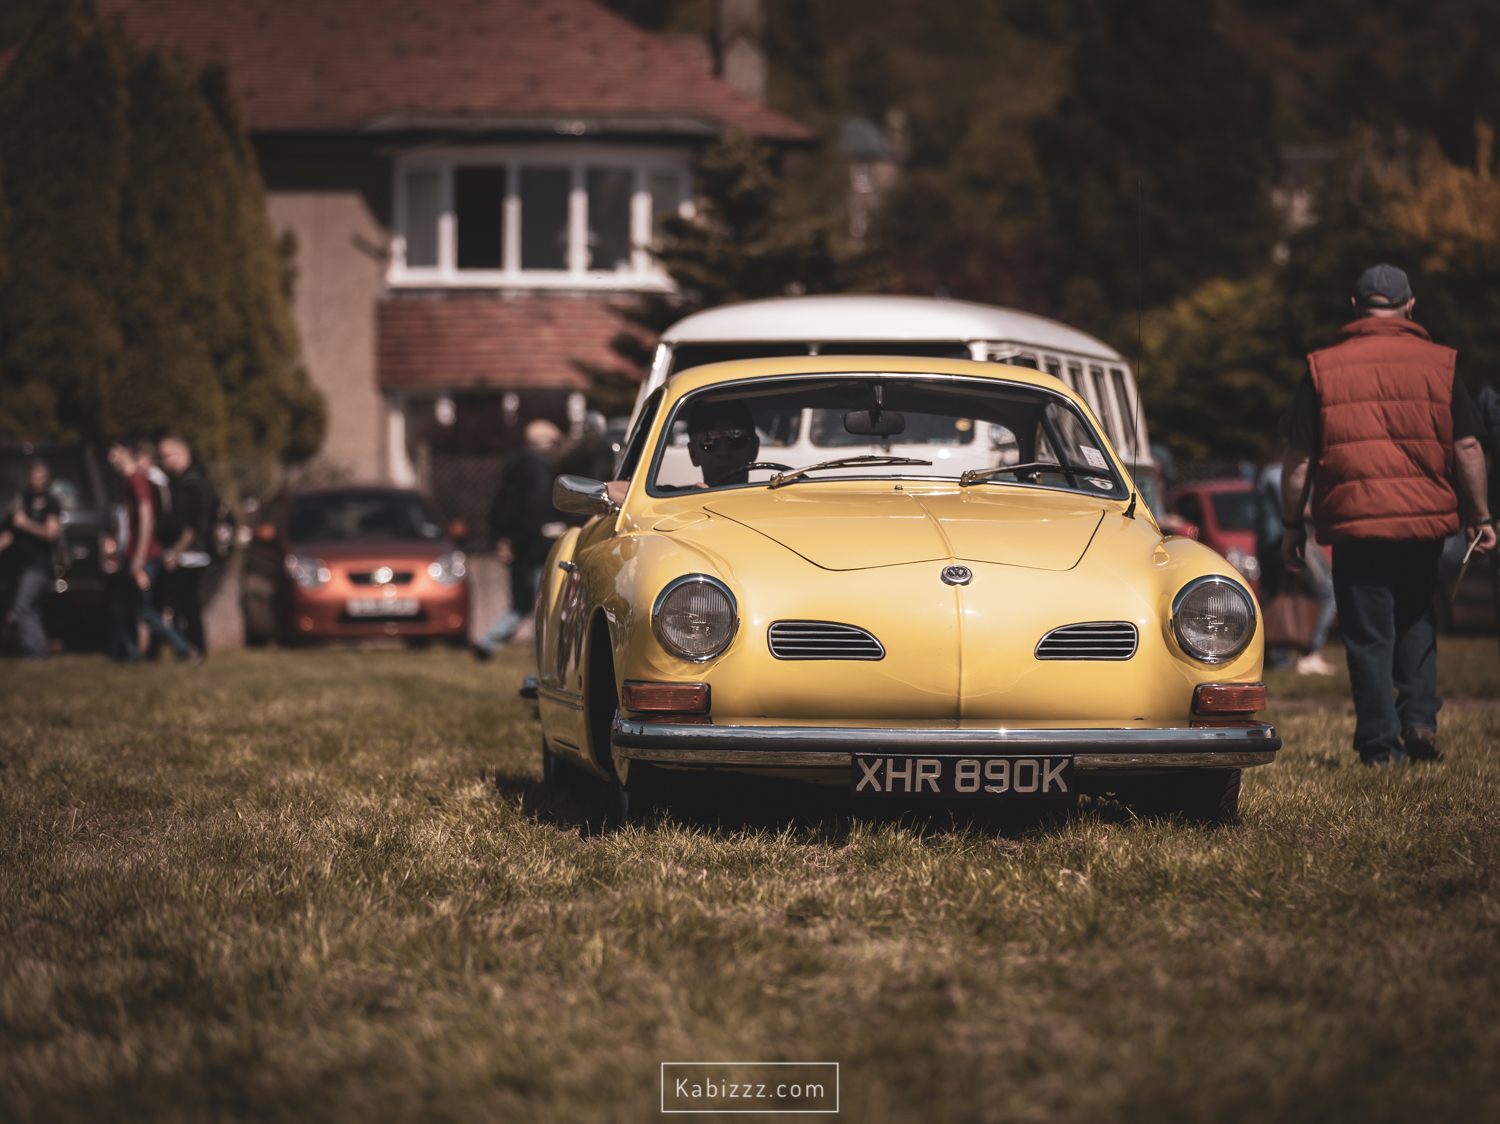 Kabizzz_Photography_Stirling_District_Classic _cars-85.jpg